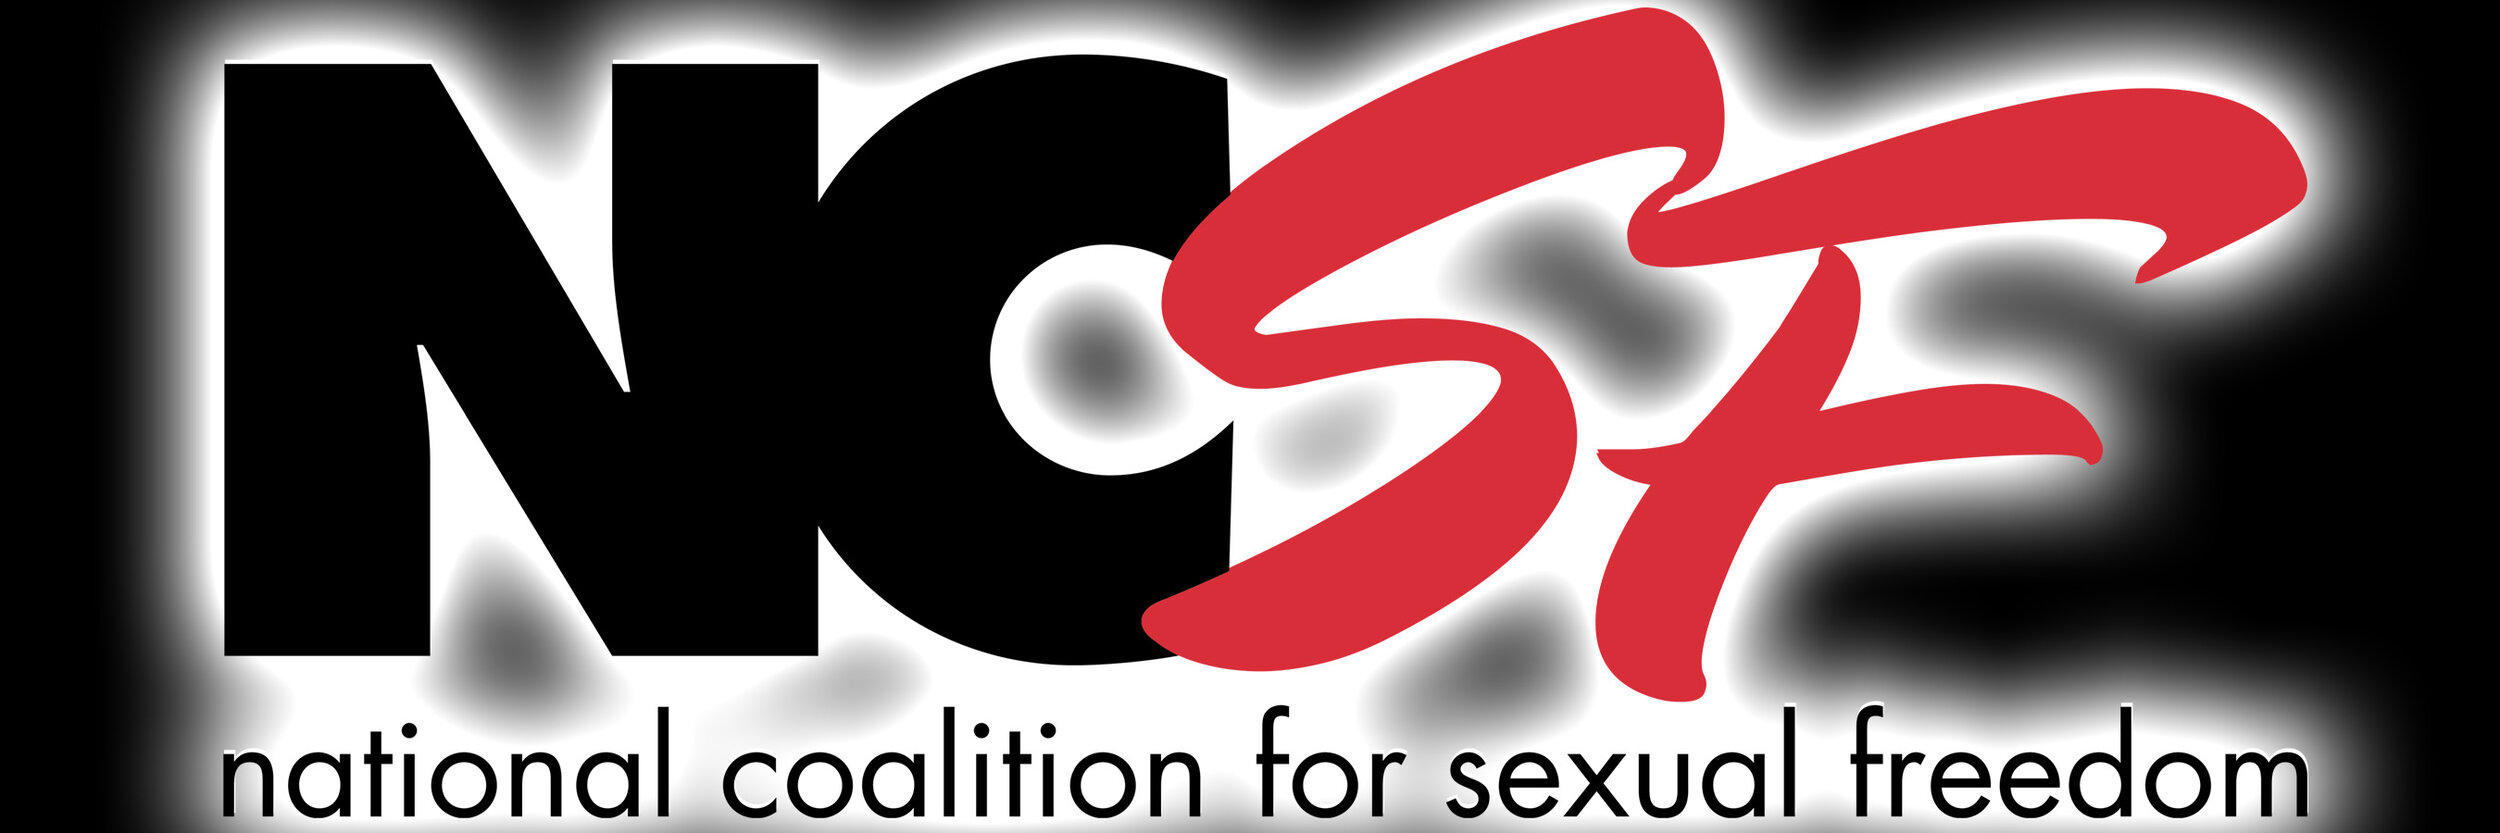 NCSF - The NCSF is committed to creating a political, legal and social environment in the US that advances equal rights for consenting adults who engage in alternative sexual and relationship expressions.The NCSF aims to advance the rights of, and advocate for consenting adults in the BDSM-Leather-Fetish, Swing, and Polyamory Communities.We pursue our vision through direct services, education, advocacy, and outreach, in conjunction with our partners, to directly benefit these communities.